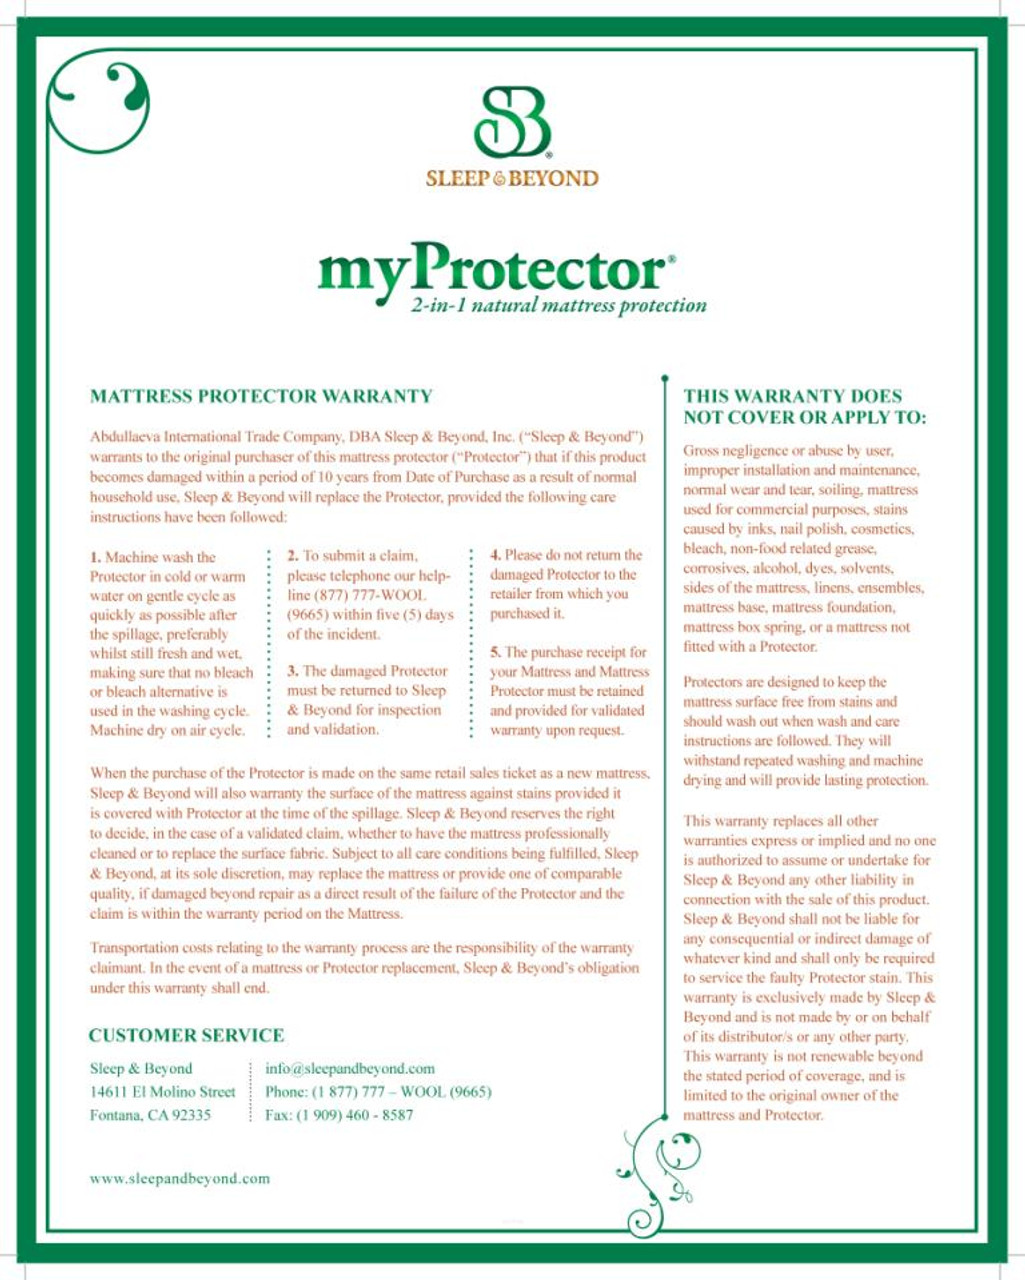 Sleep & Beyond myProtector™, 2-in-1 ultimate, washable, natural mattress protector back package